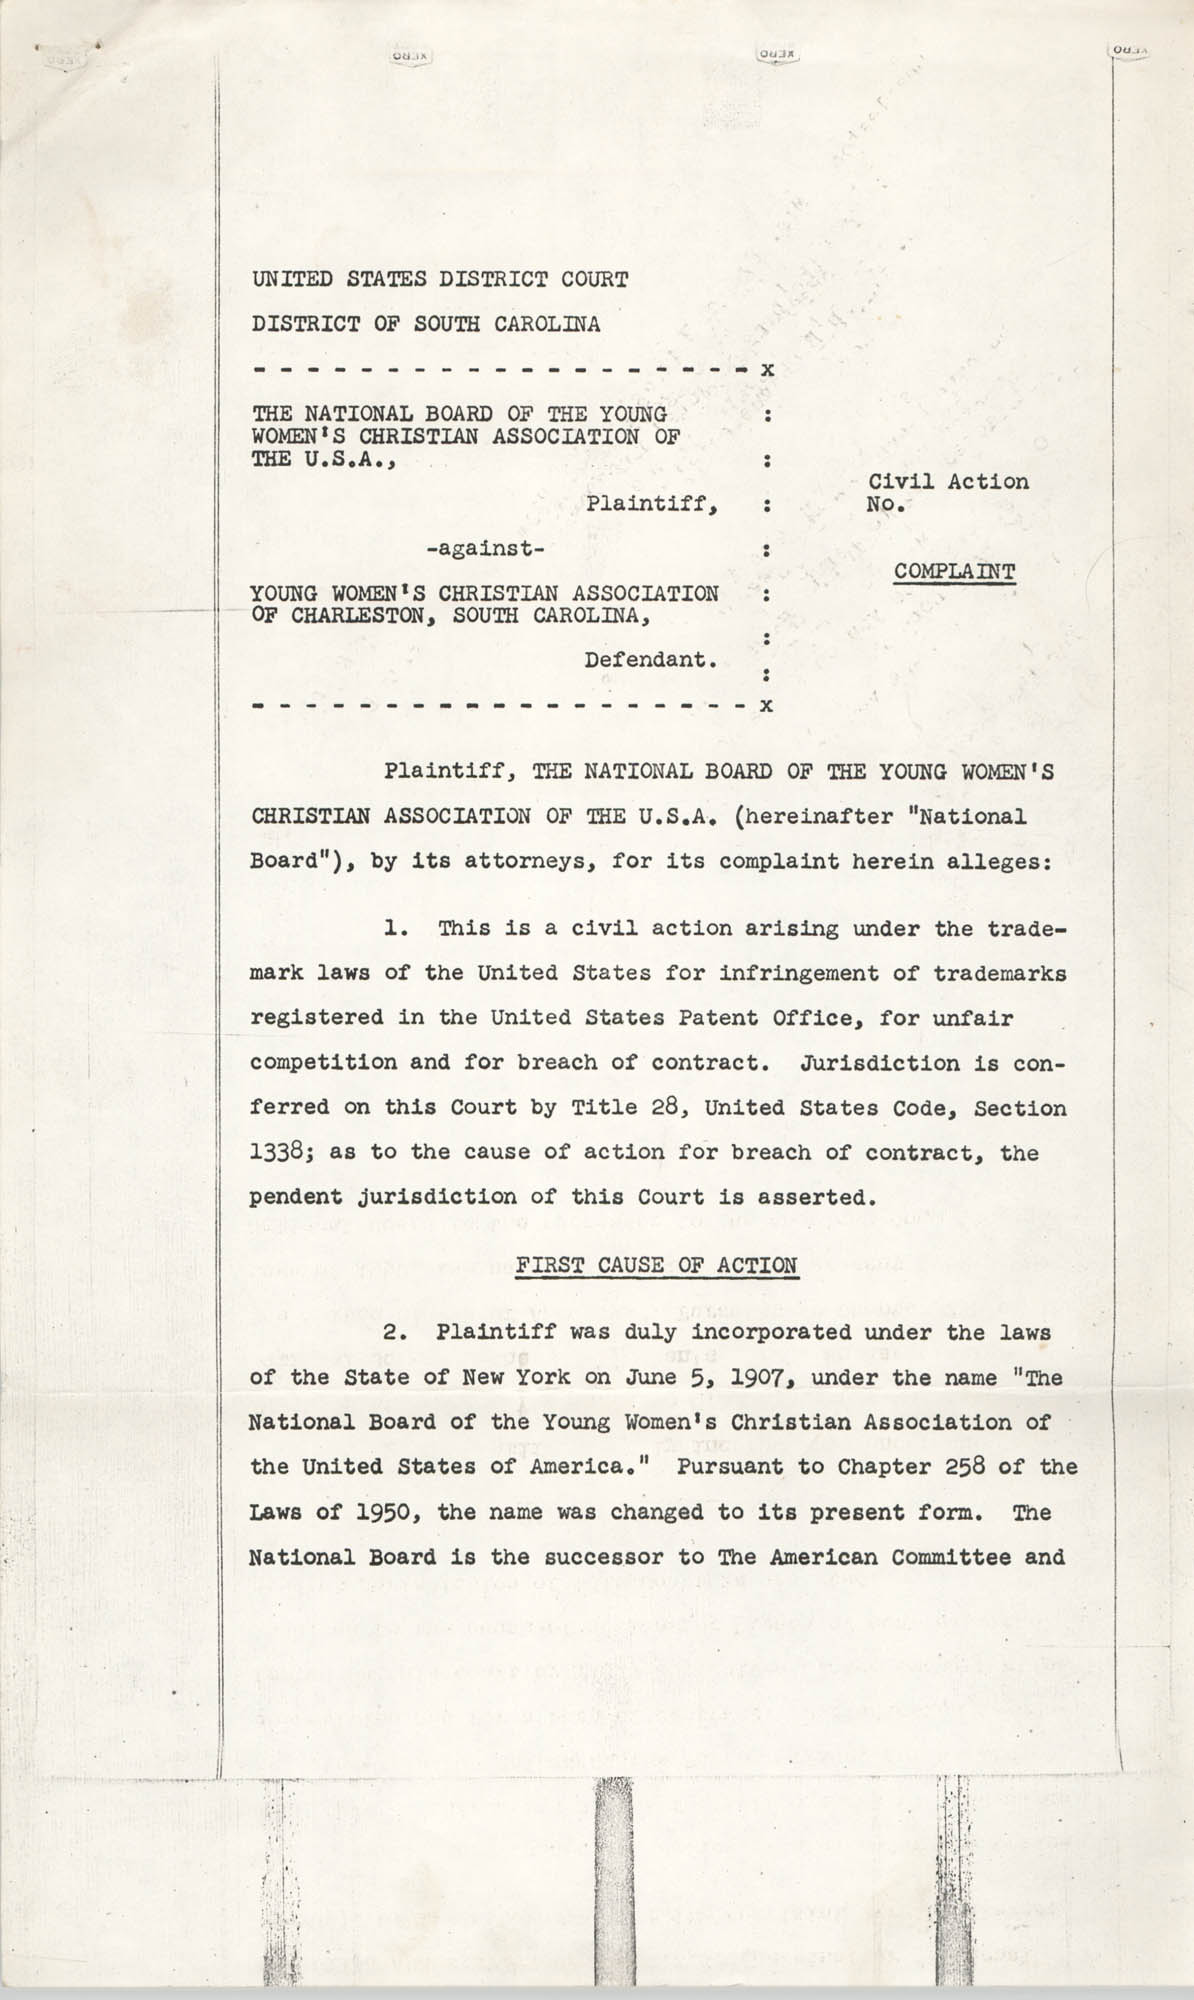 National Board of Y.W.C.A. of the U.S.A. against Y.W.C.A. of Charleston, South Carolina – Civil Action, Complaint, Page 1